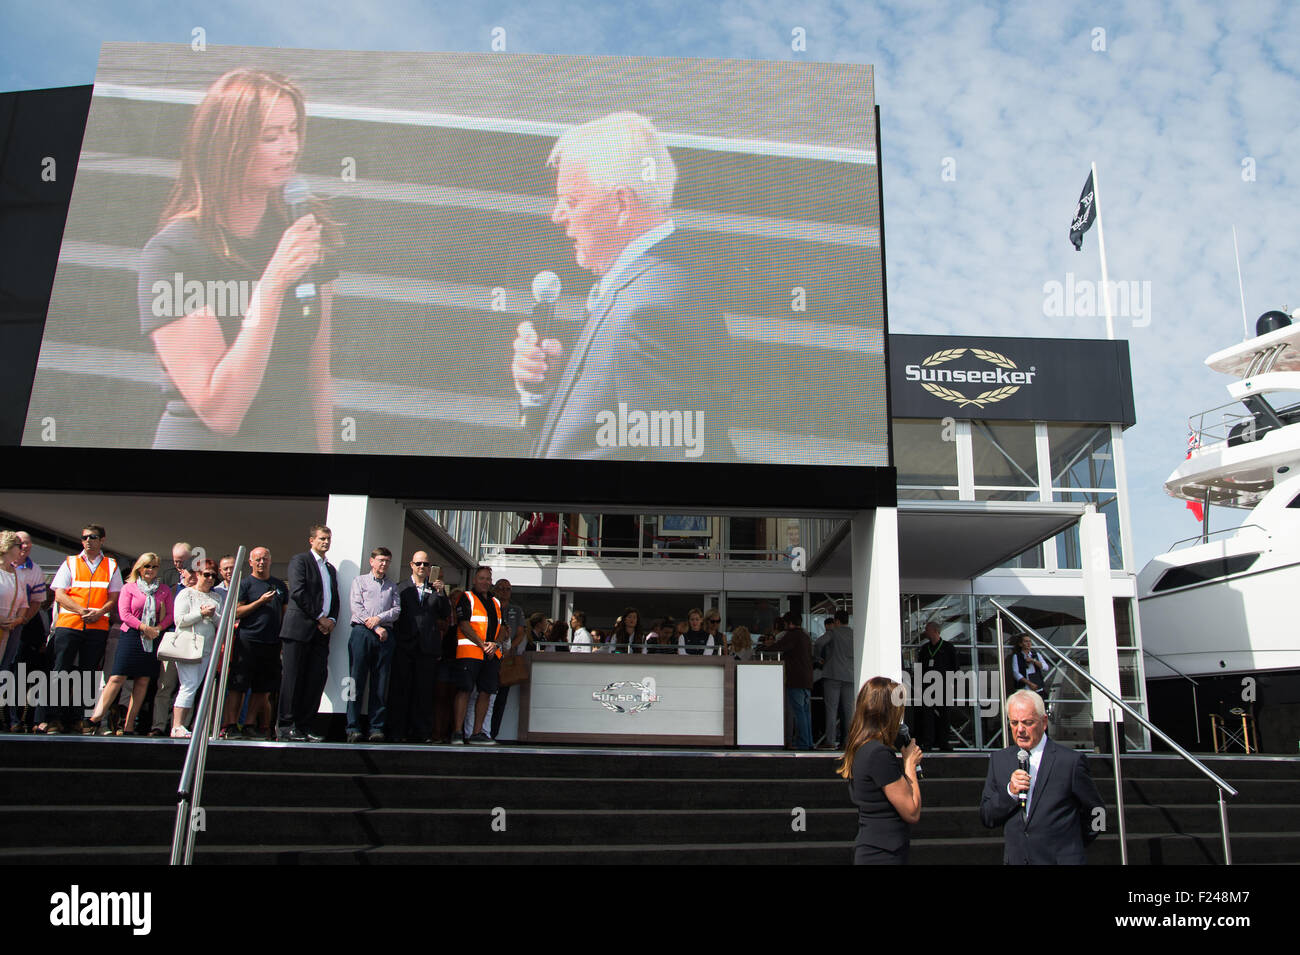 Southampton, UK. 11th September 2015. Southampton Boat Show 2015. Suzy Perry discusses Sunseeker and Forumla One Stock Photo